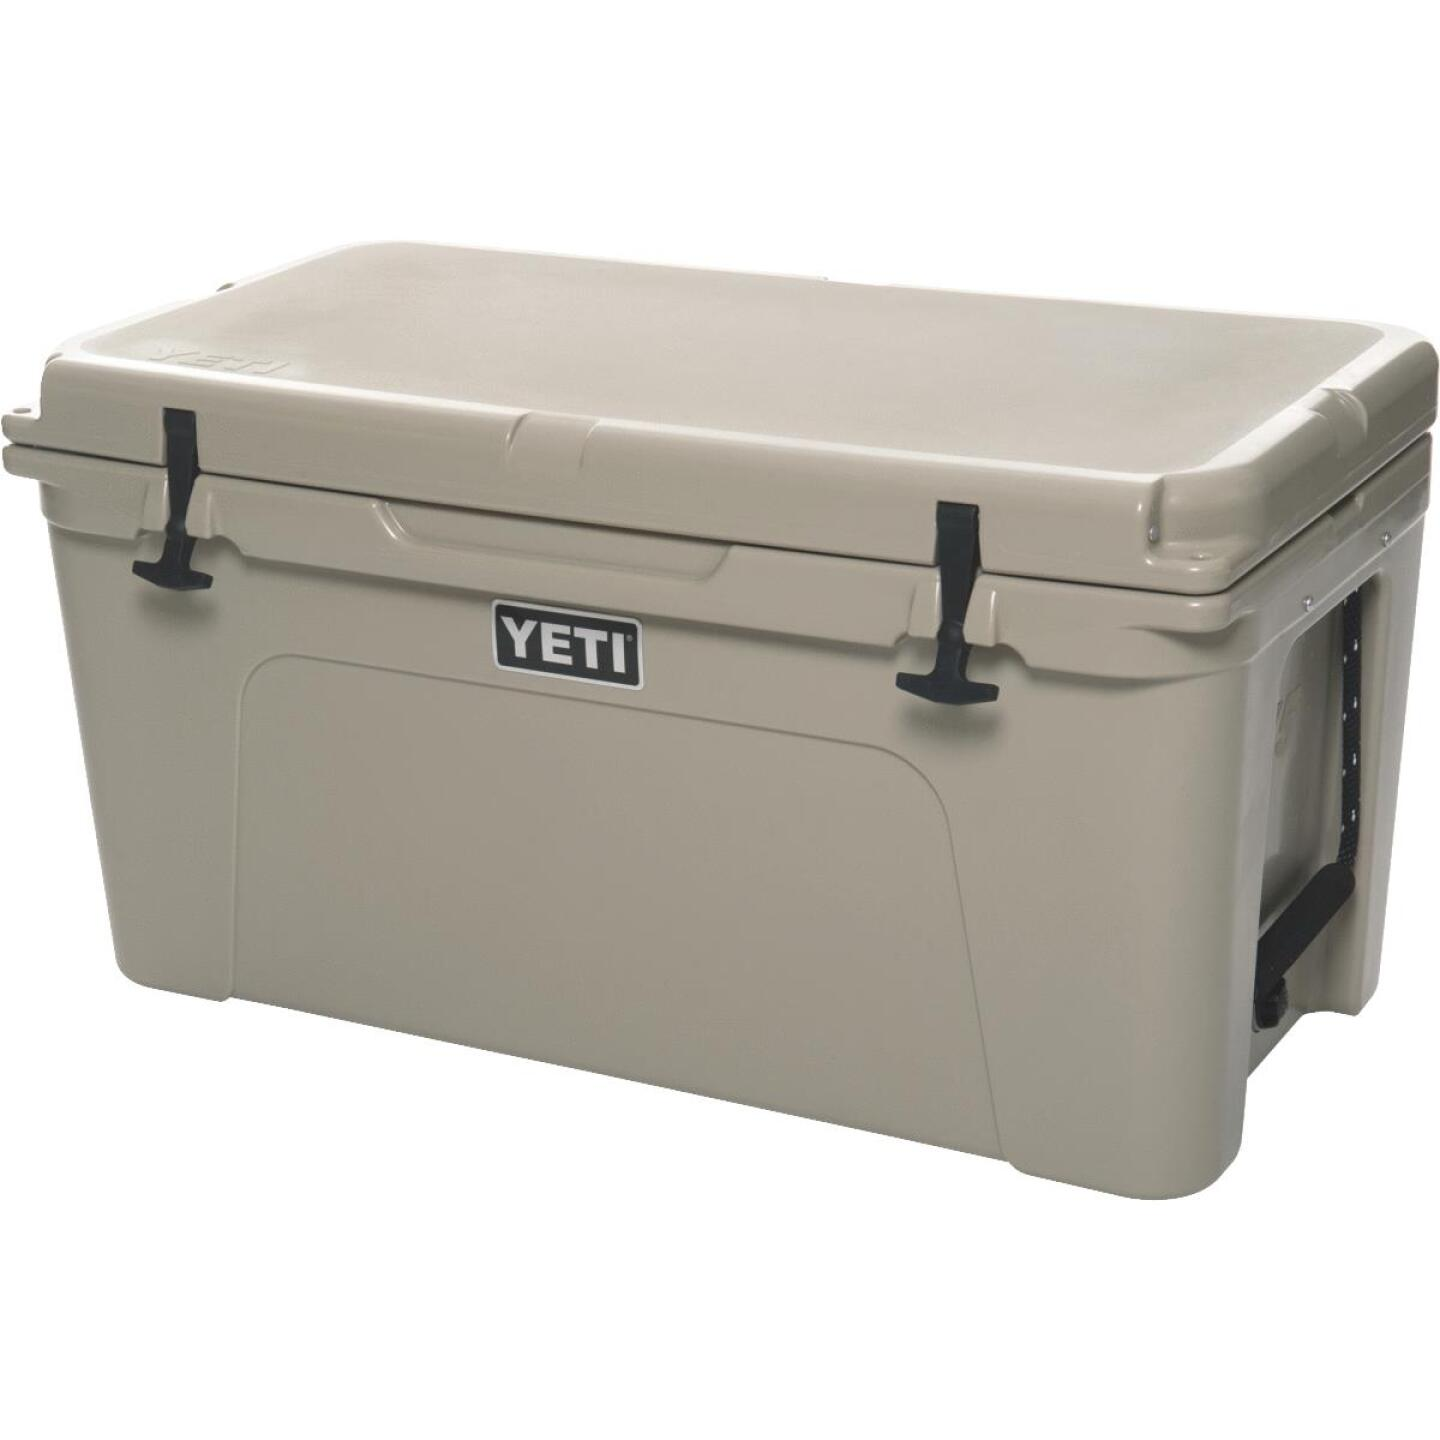 Yeti Tundra 75, 57-Can Cooler, Tan Image 1